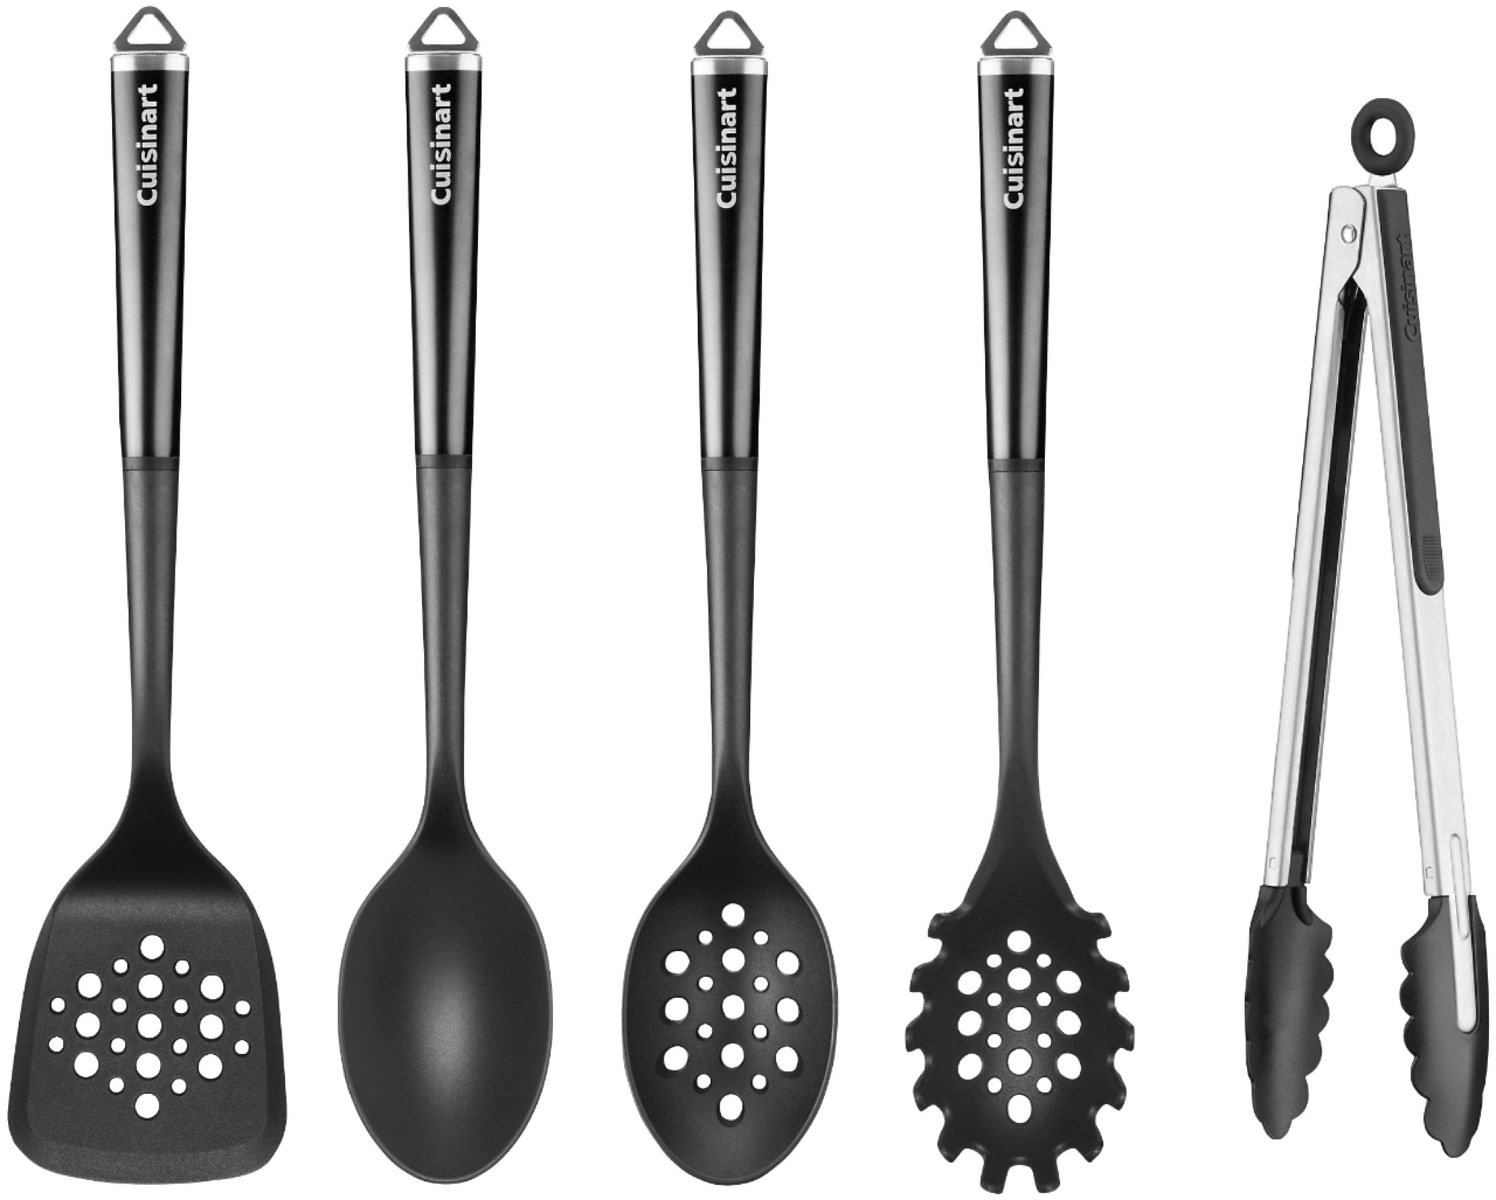 Cuisinart 5 Pc FusionPro Tool Set Stainless Steel CTG-00-5FPO